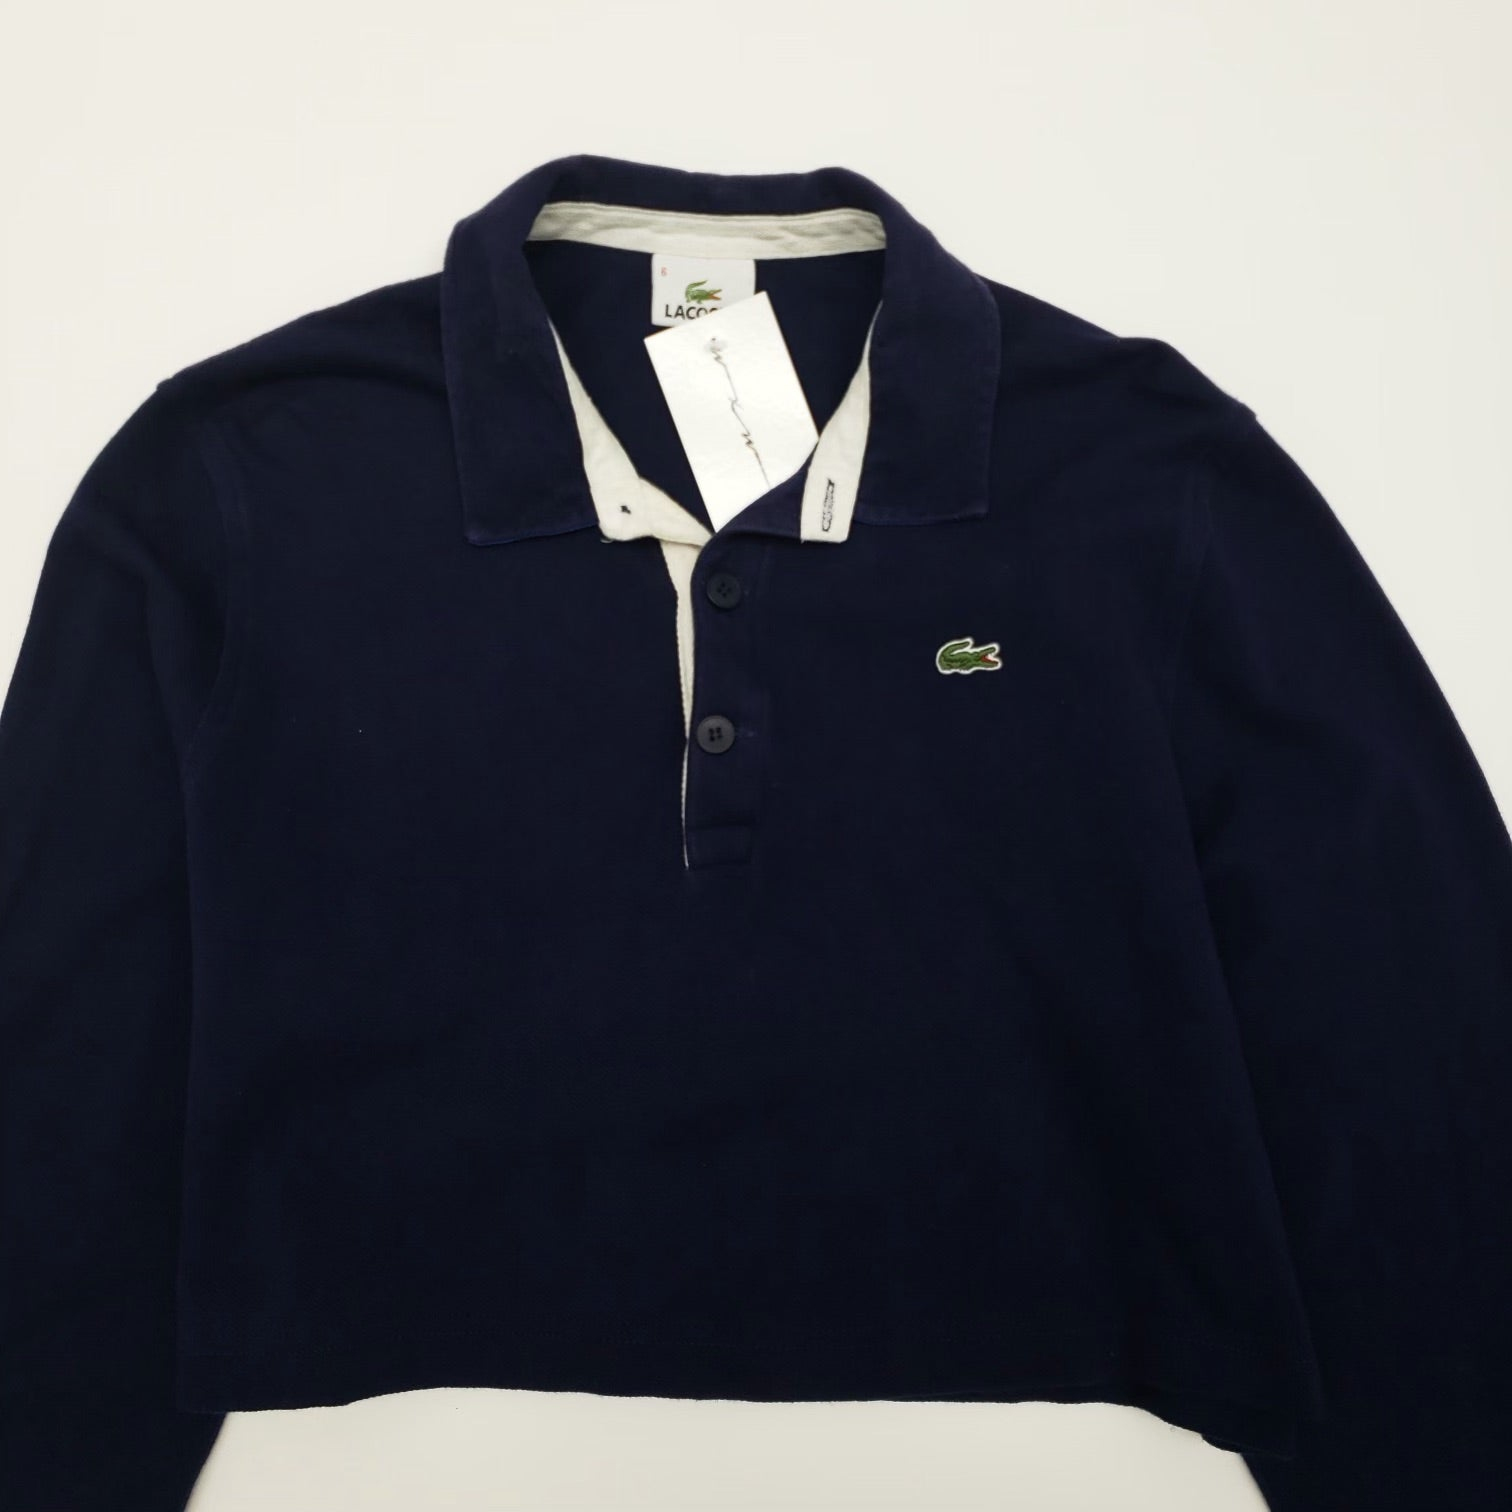 Lacoste Polo Crop Top